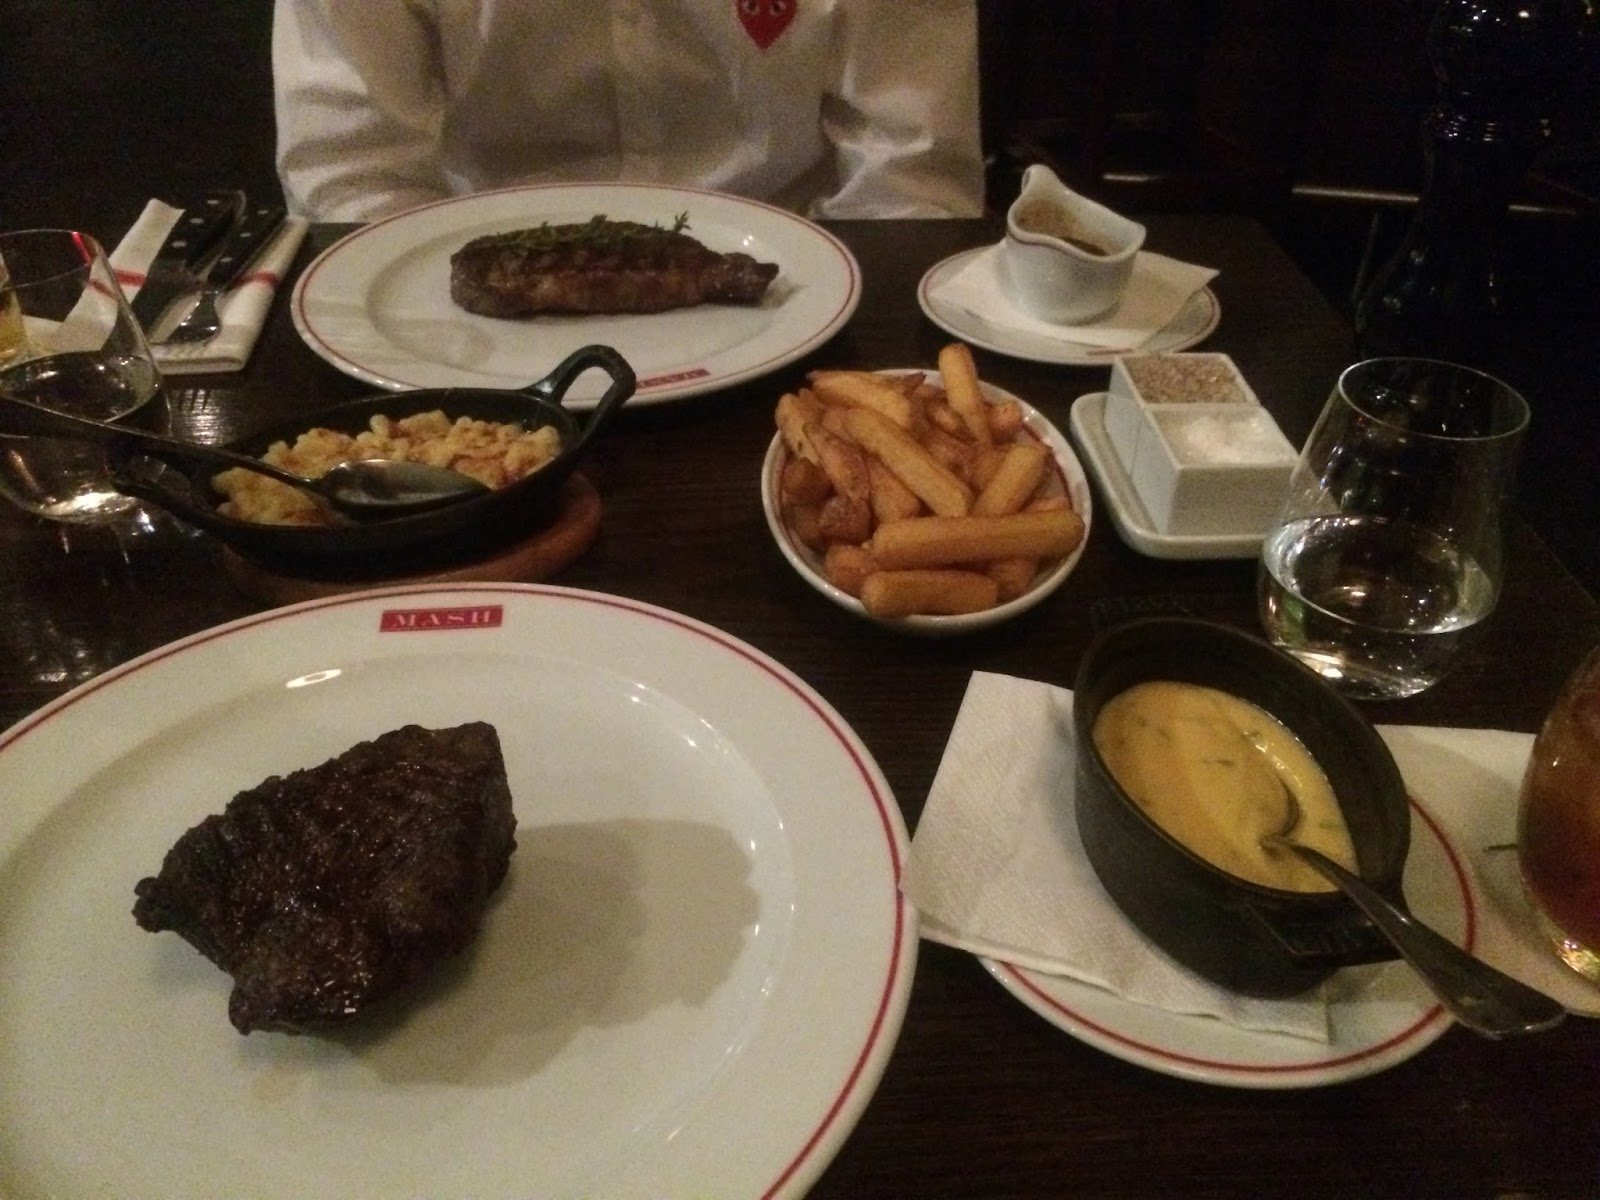 Copenhagen Travel Post - MASH Steak Restaurant Review